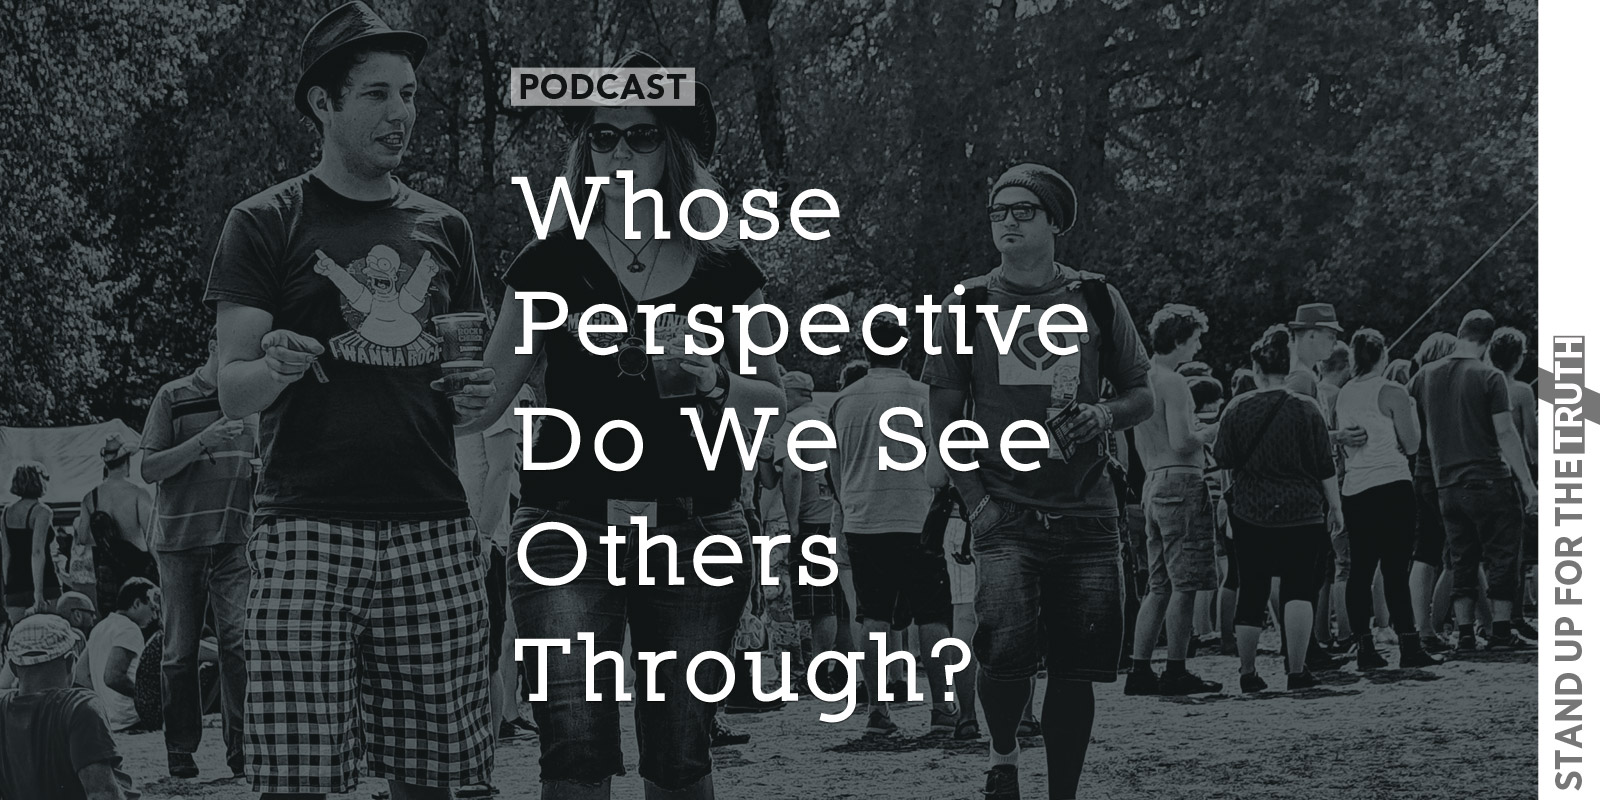 Whose Perspective Do We See Others Through?